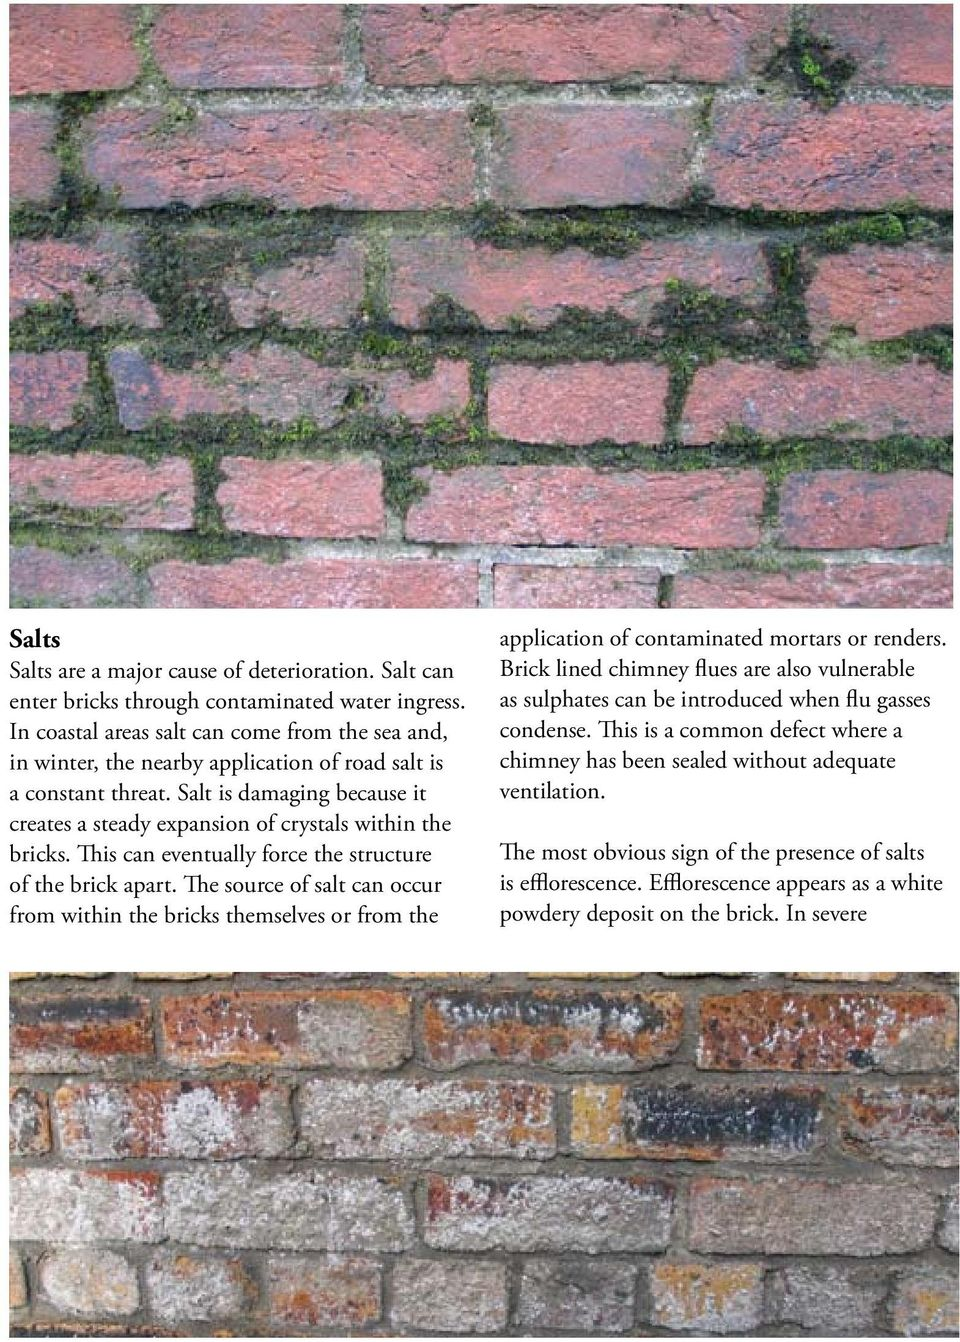 Salt is damaging because it creates a steady expansion of crystals within the bricks. This can eventually force the structure of the brick apart.